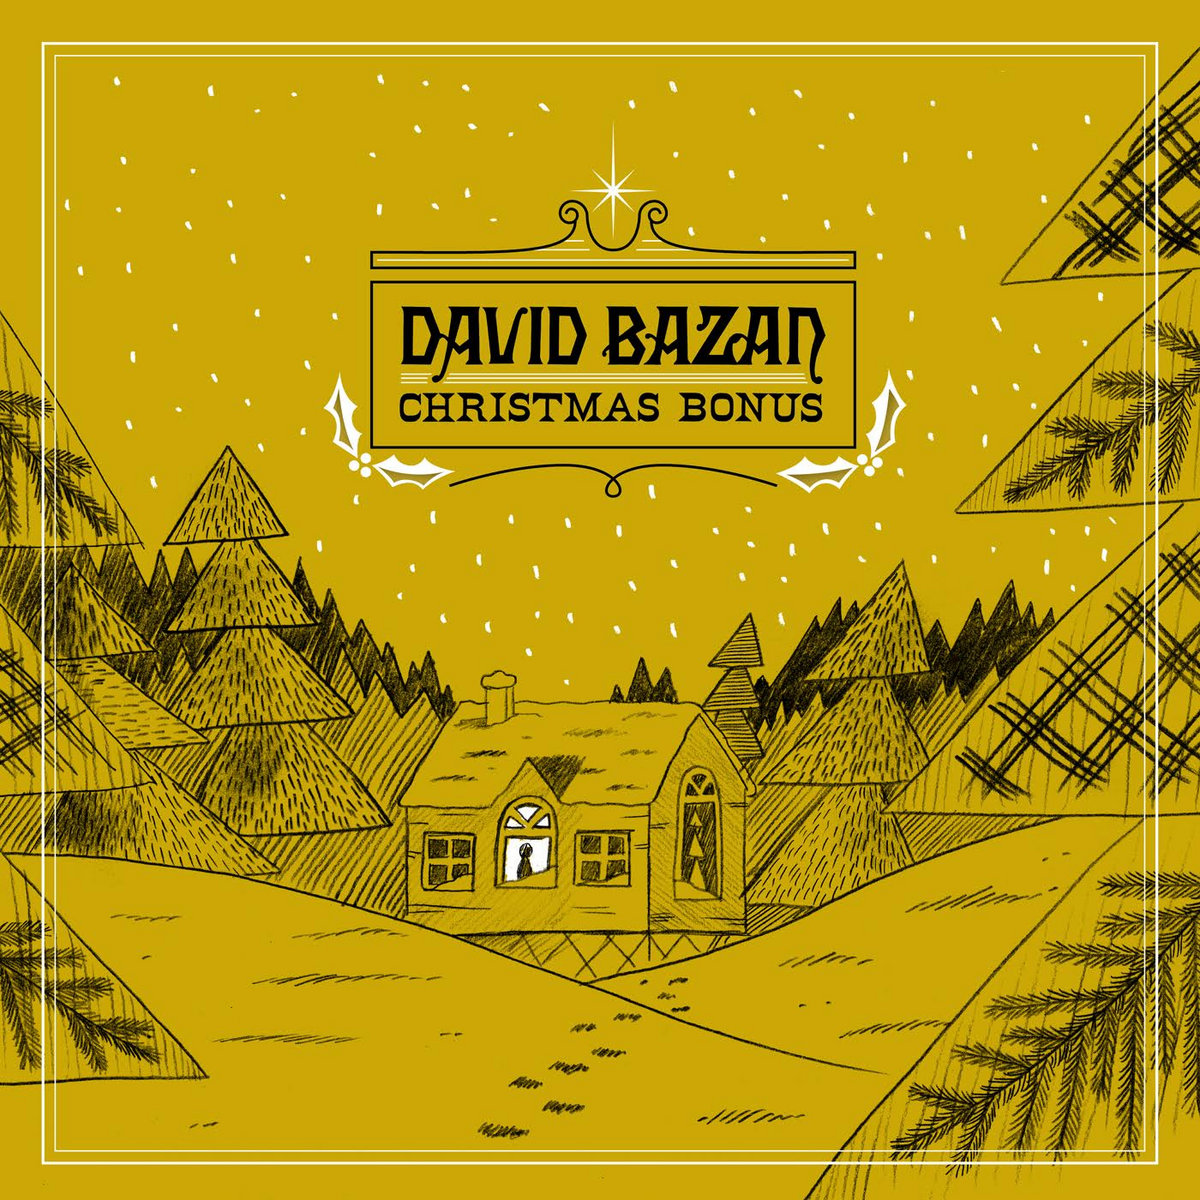 I Heard The Bells On Christmas Day Lyrics.I Heard The Bells On Christmas Day Alt Version David Bazan